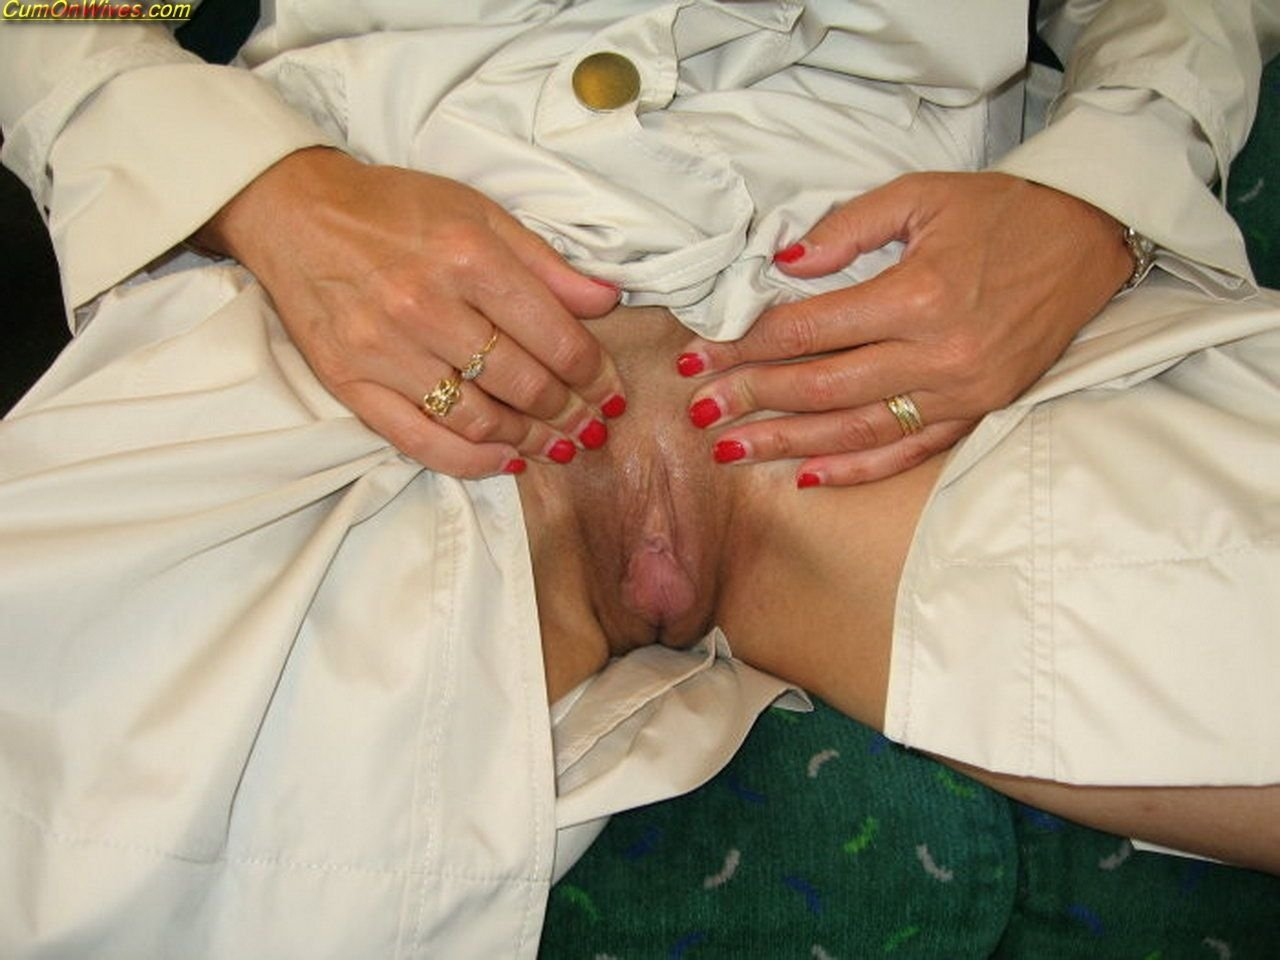 double penetration for lucky brunette girl